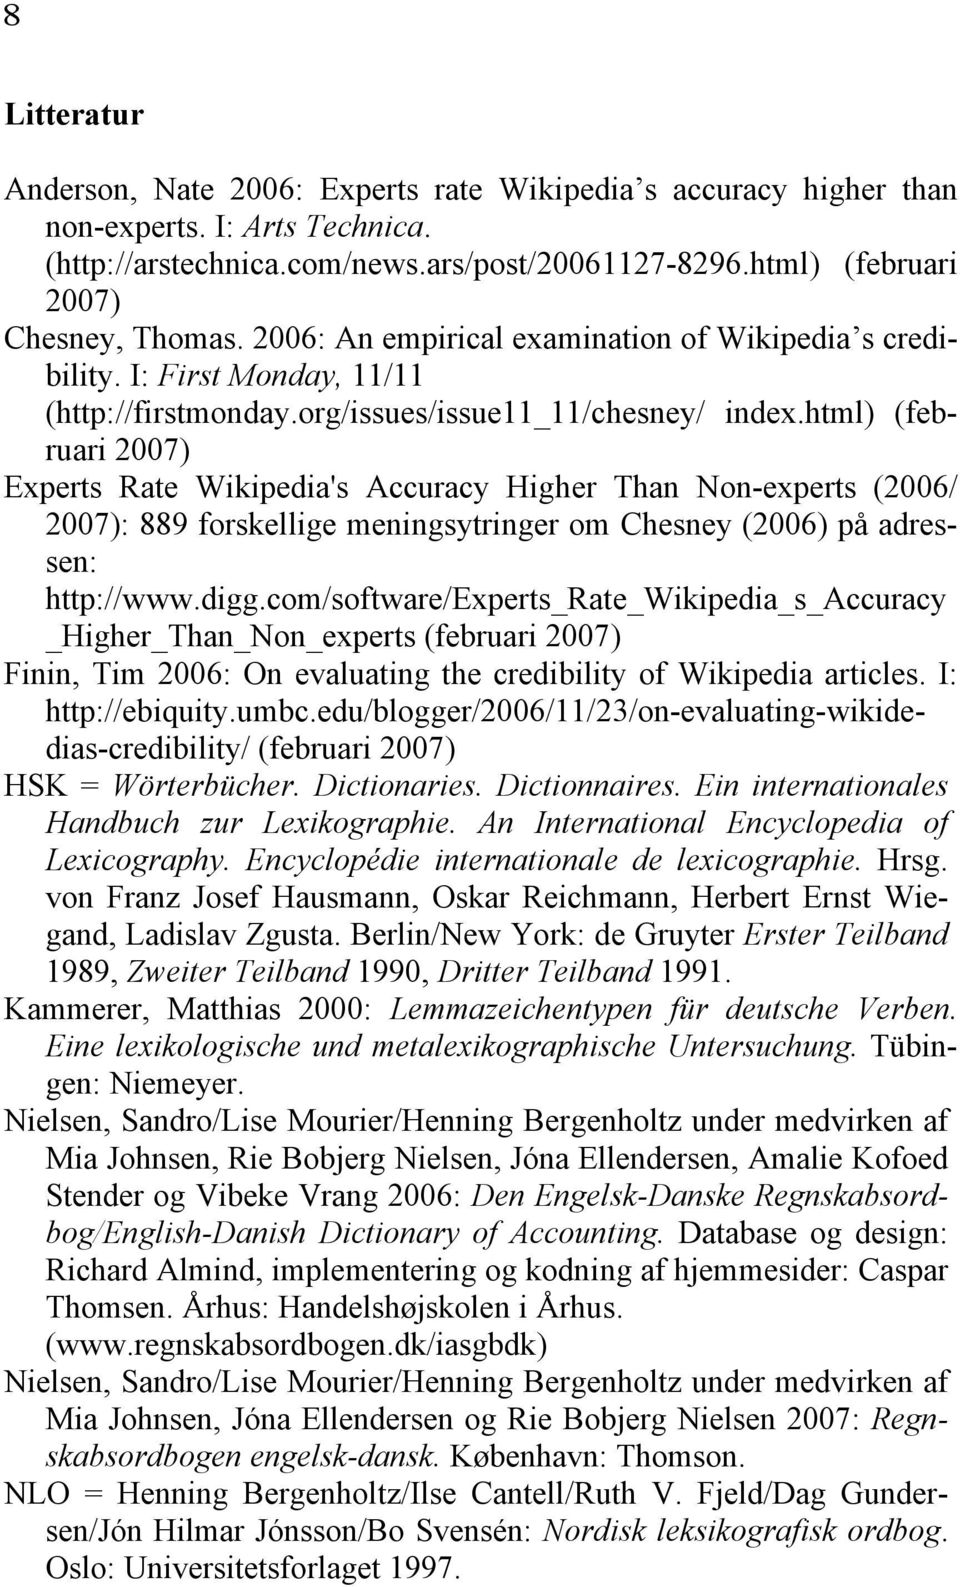 html) (februari 2007) Experts Rate Wikipedia's Accuracy Higher Than Non-experts (2006/ 2007): 889 forskellige meningsytringer om Chesney (2006) på adressen: http://www.digg.